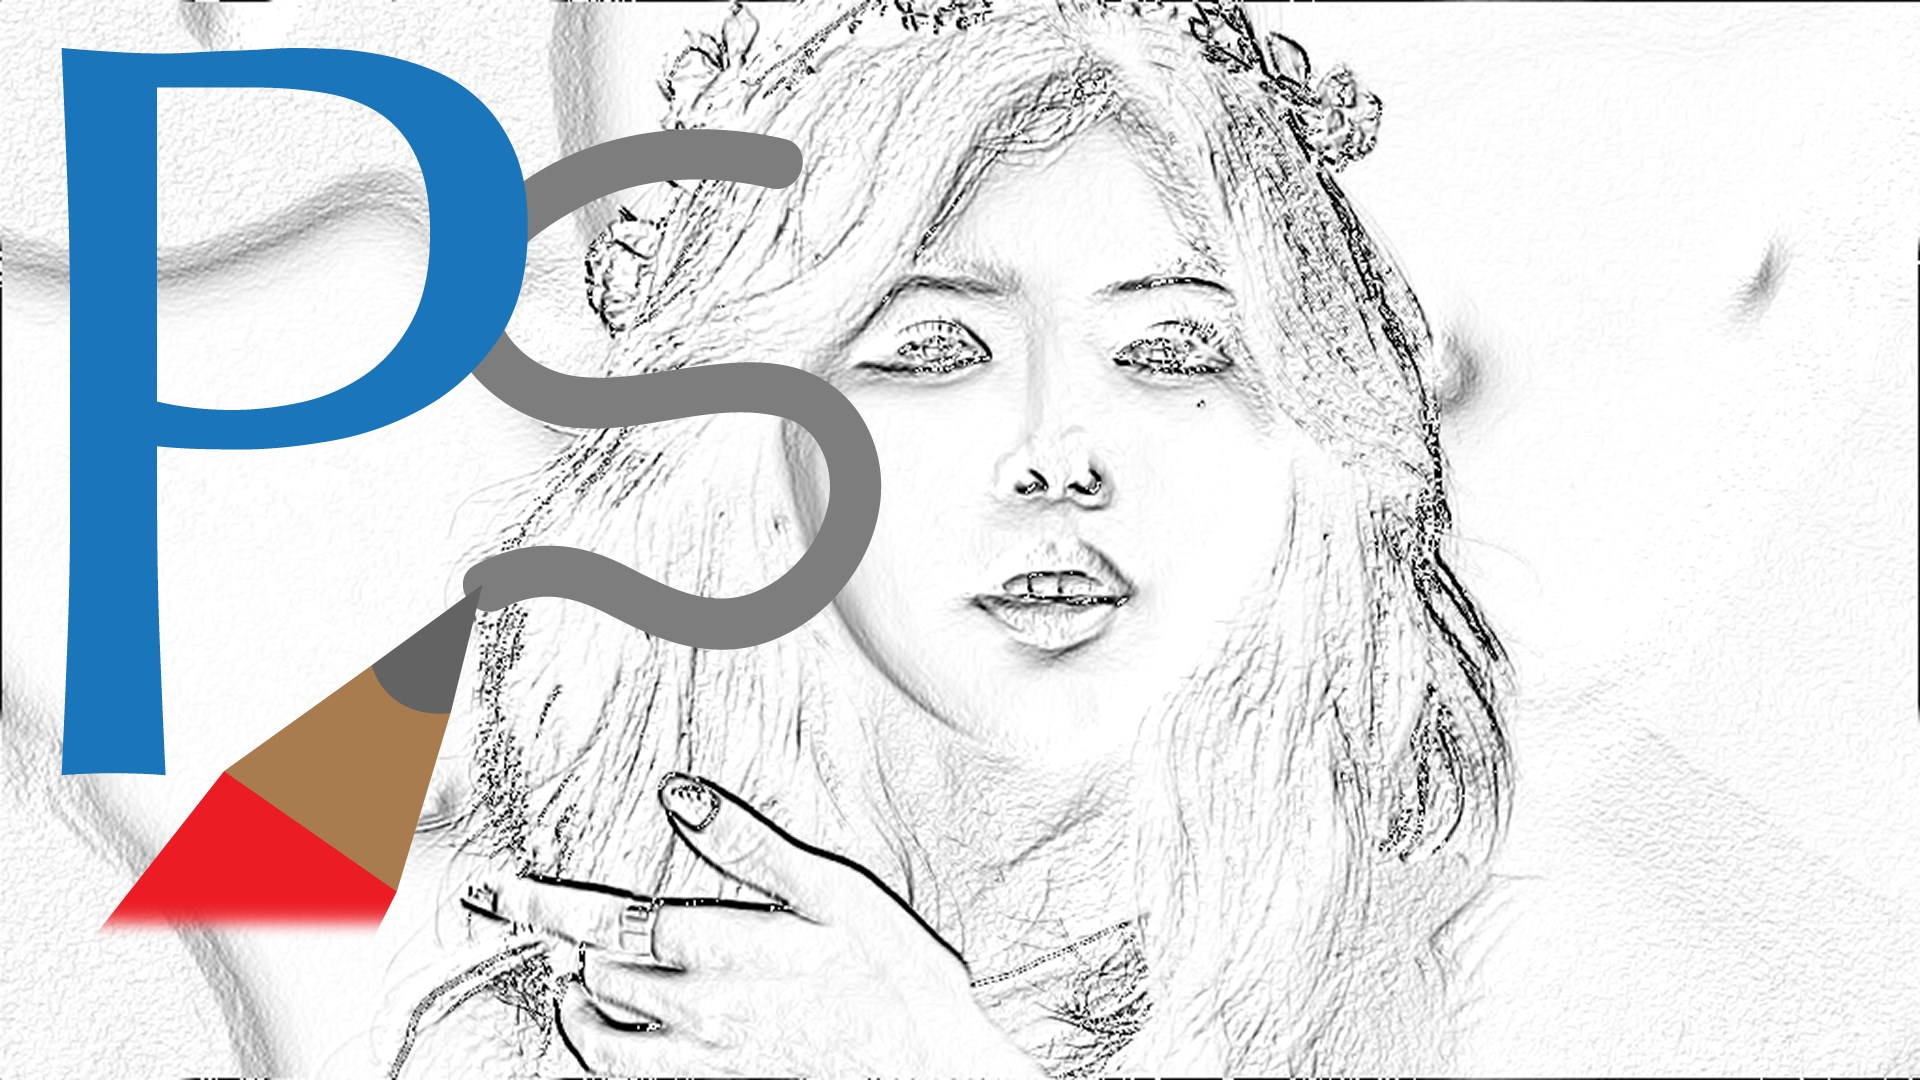 Picture To Pencil Sketch App